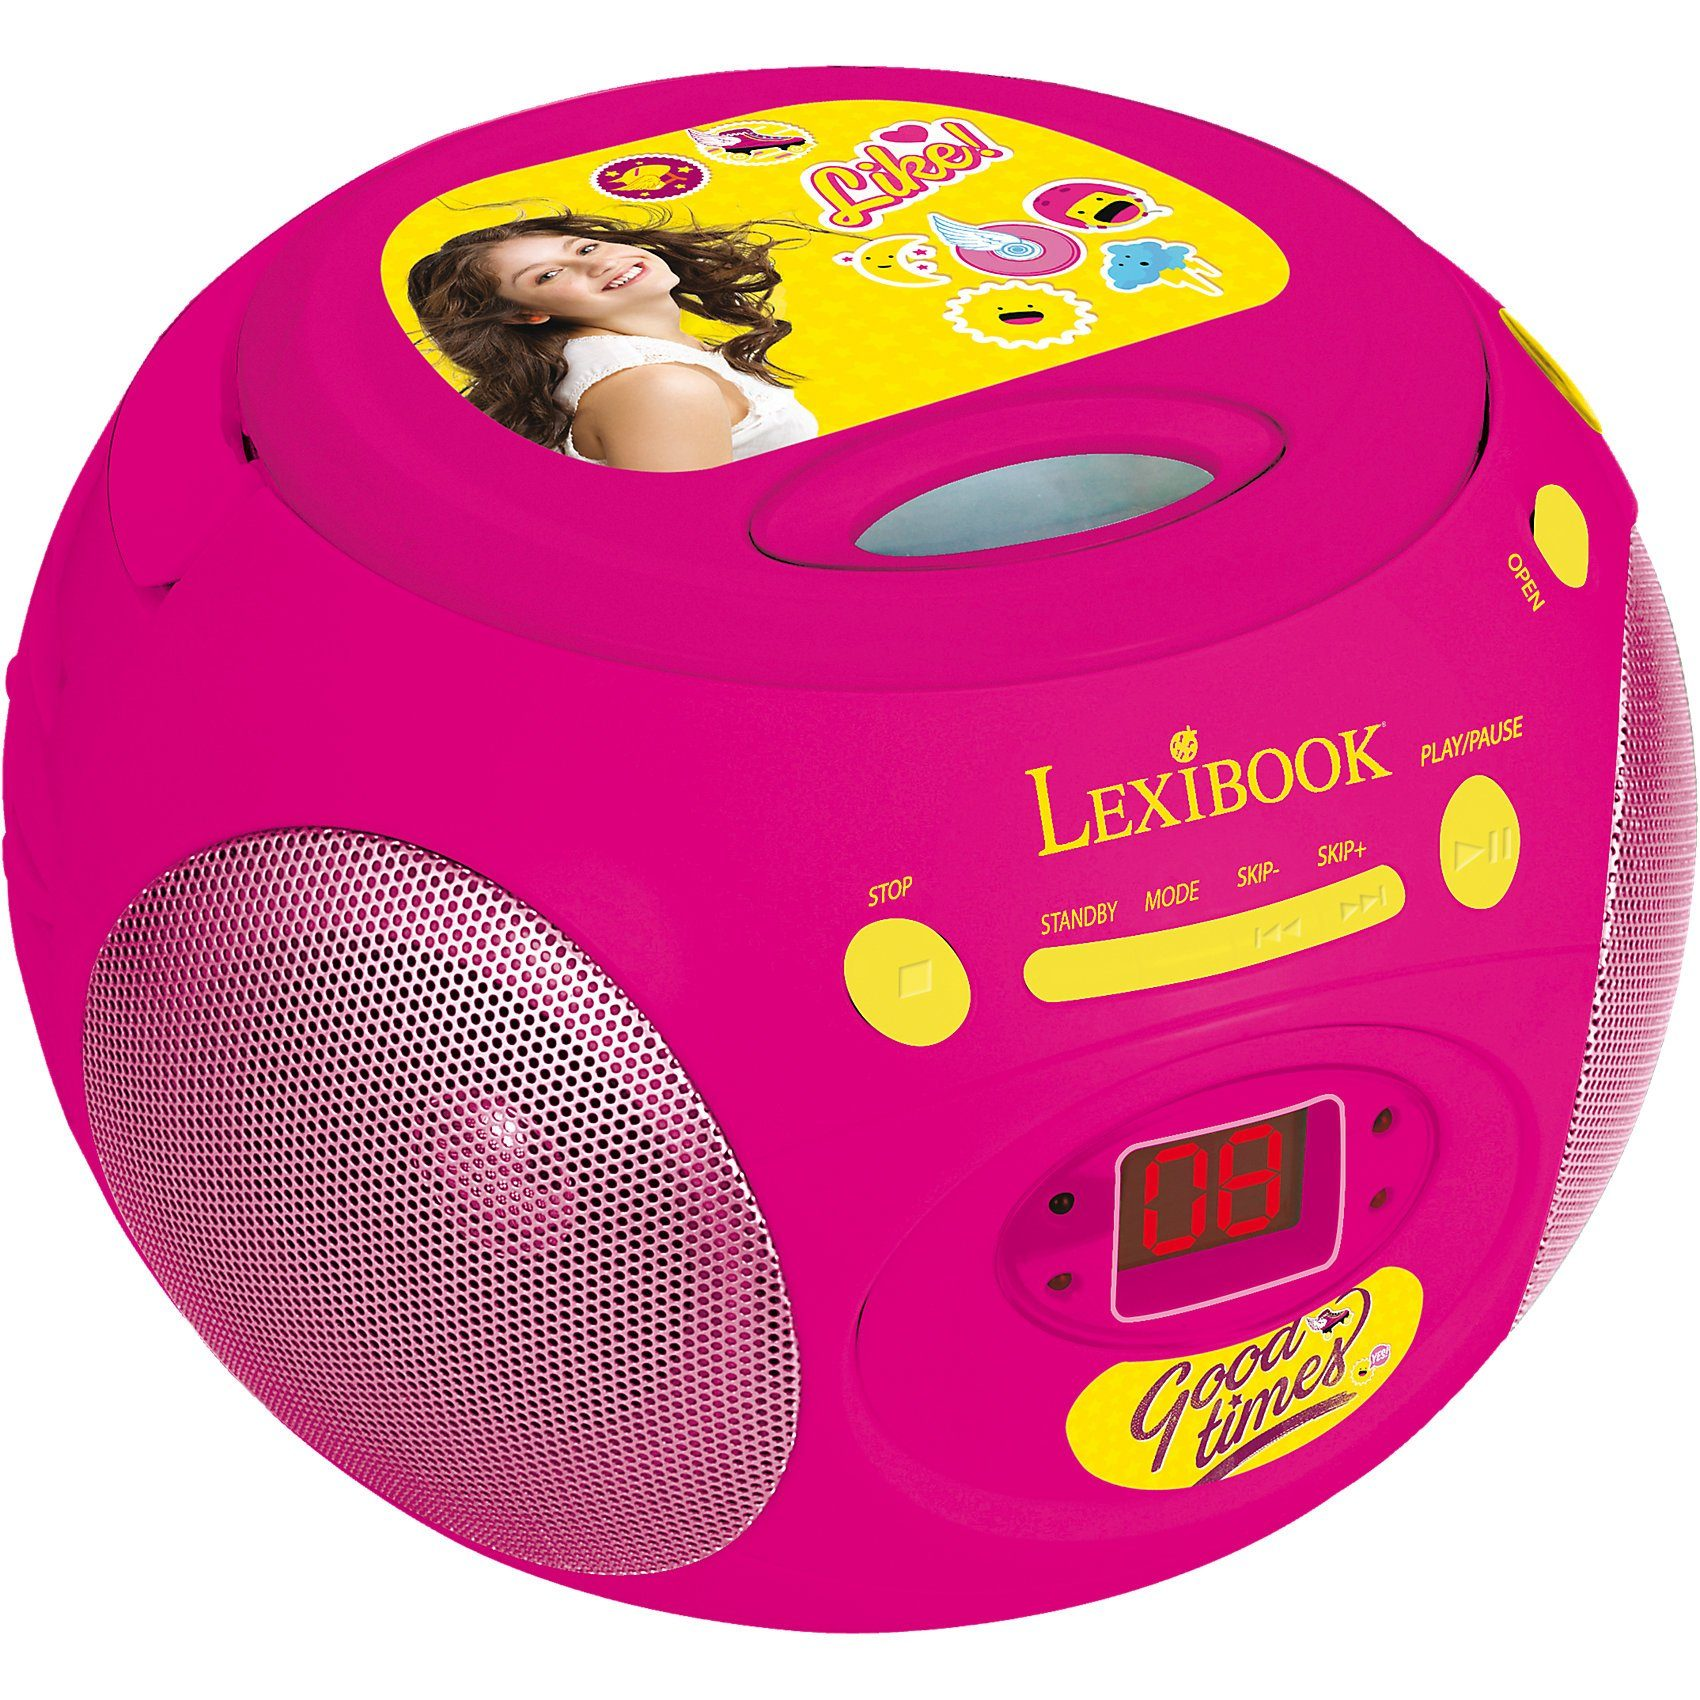 LEXIBOOK Soy Luna CD-Player mit Radio